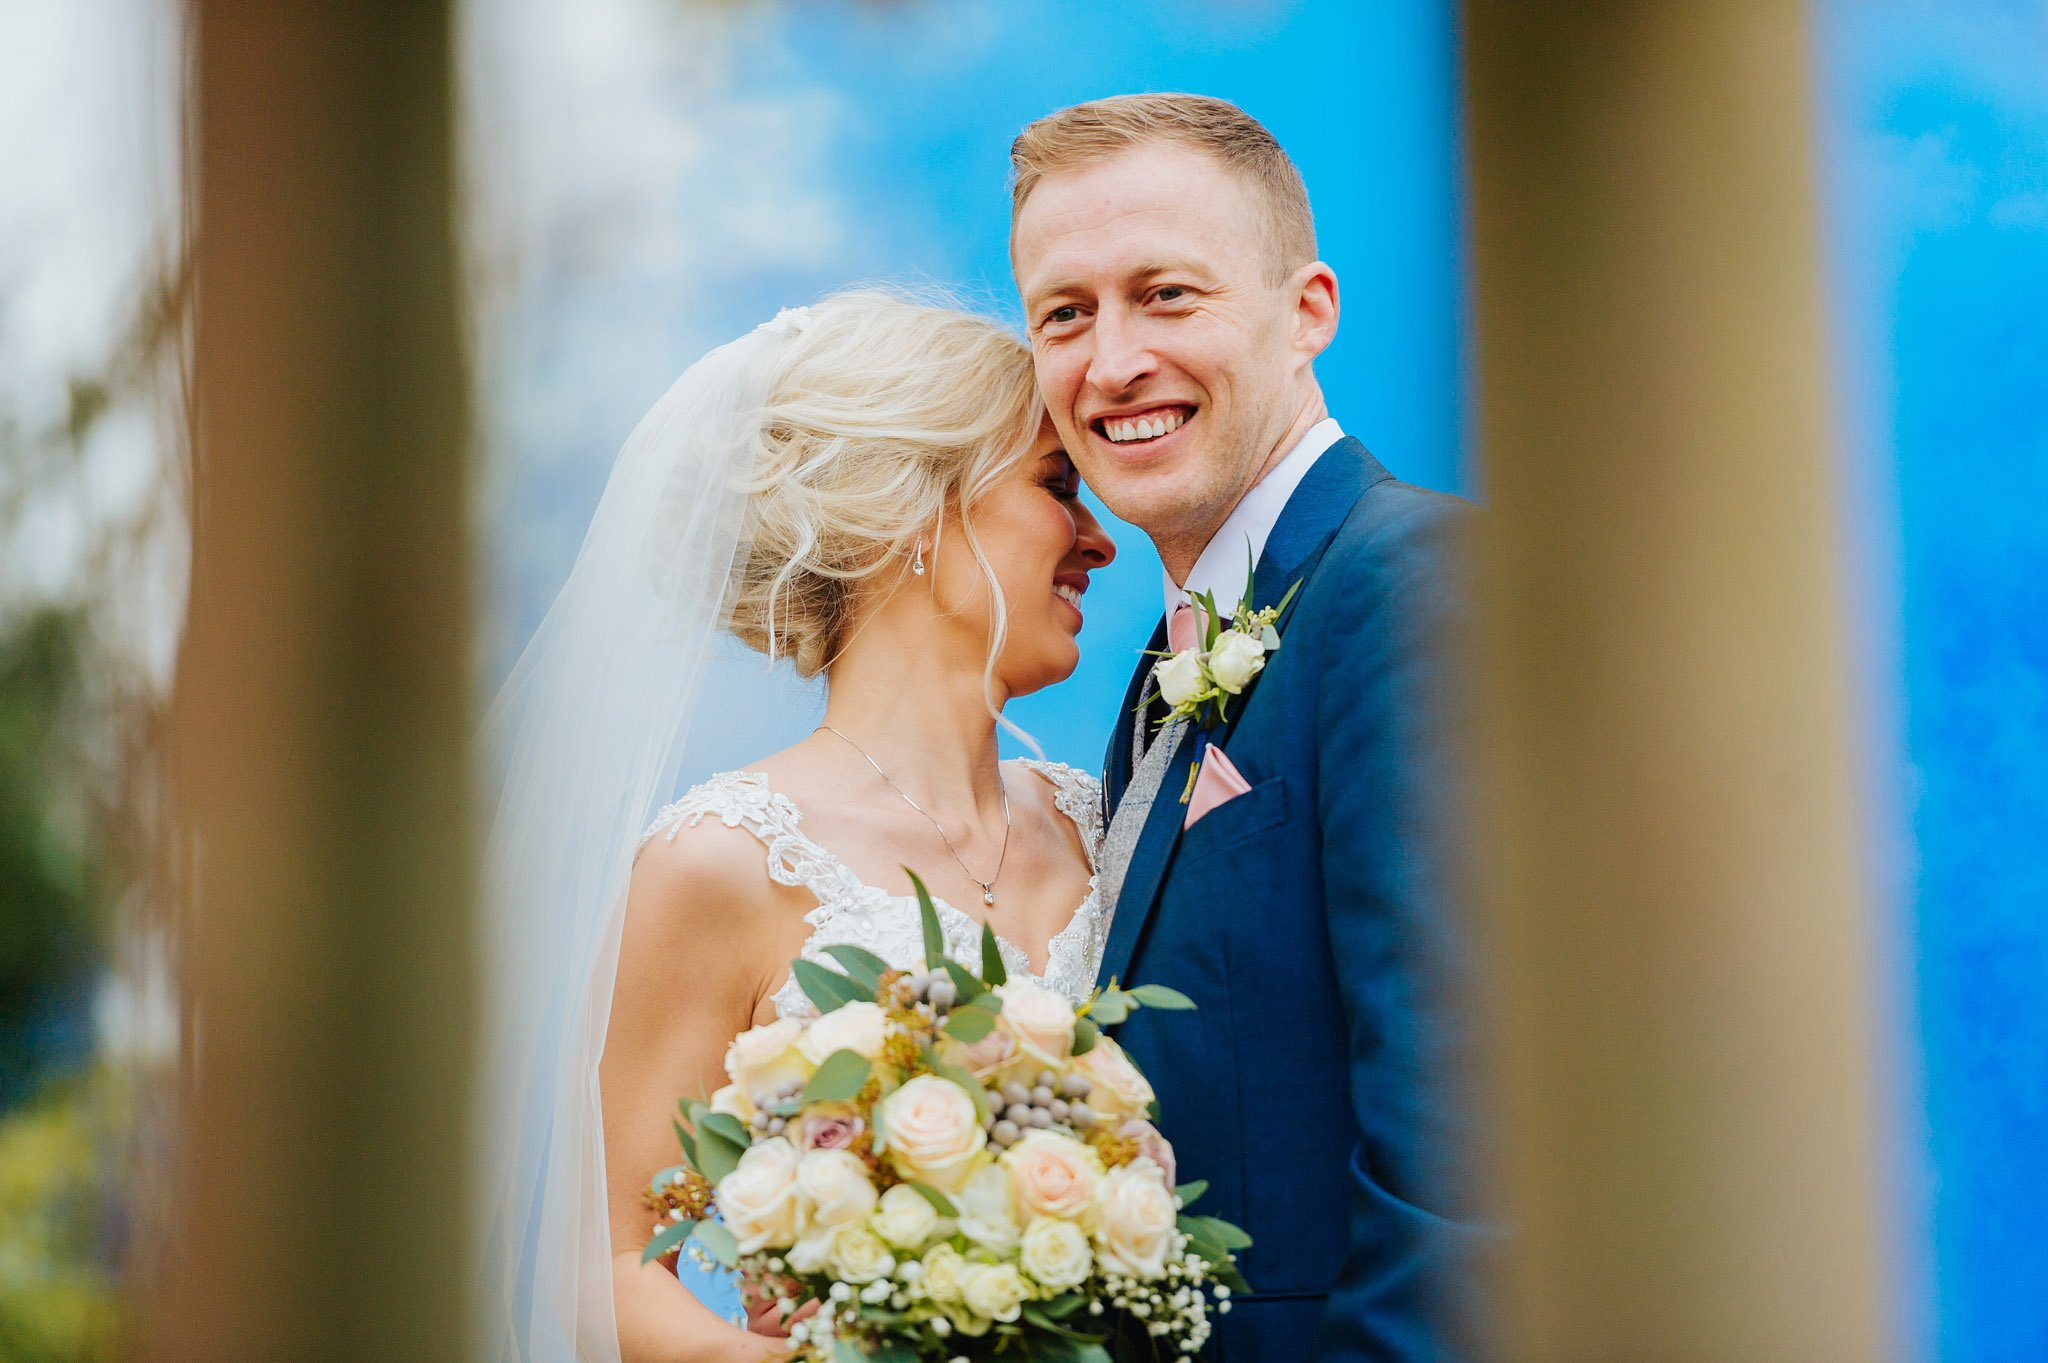 lemore manor wedding herefordshire 110 - Lemore Manor wedding, Herefordshire - West Midlands | Sadie + Ken